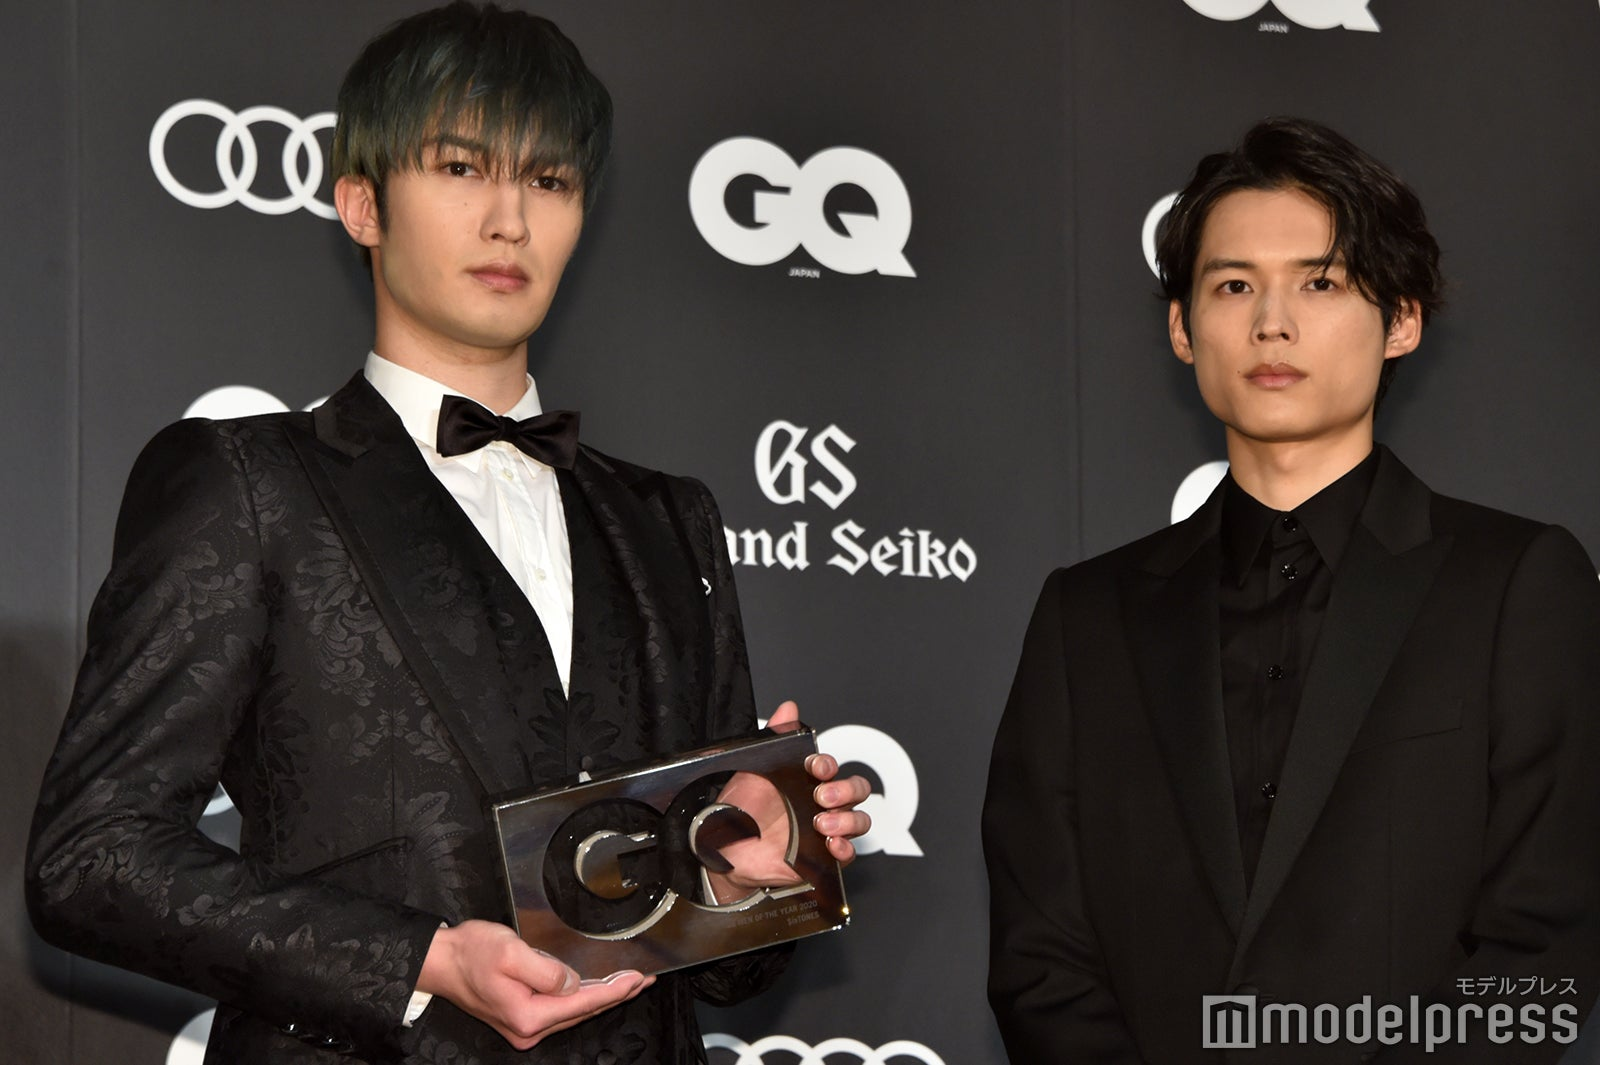 SixTONESジェシー&松村北斗が登壇「今度は個人で全員頂けたら」<GQ MEN OF THE YEAR 2020>